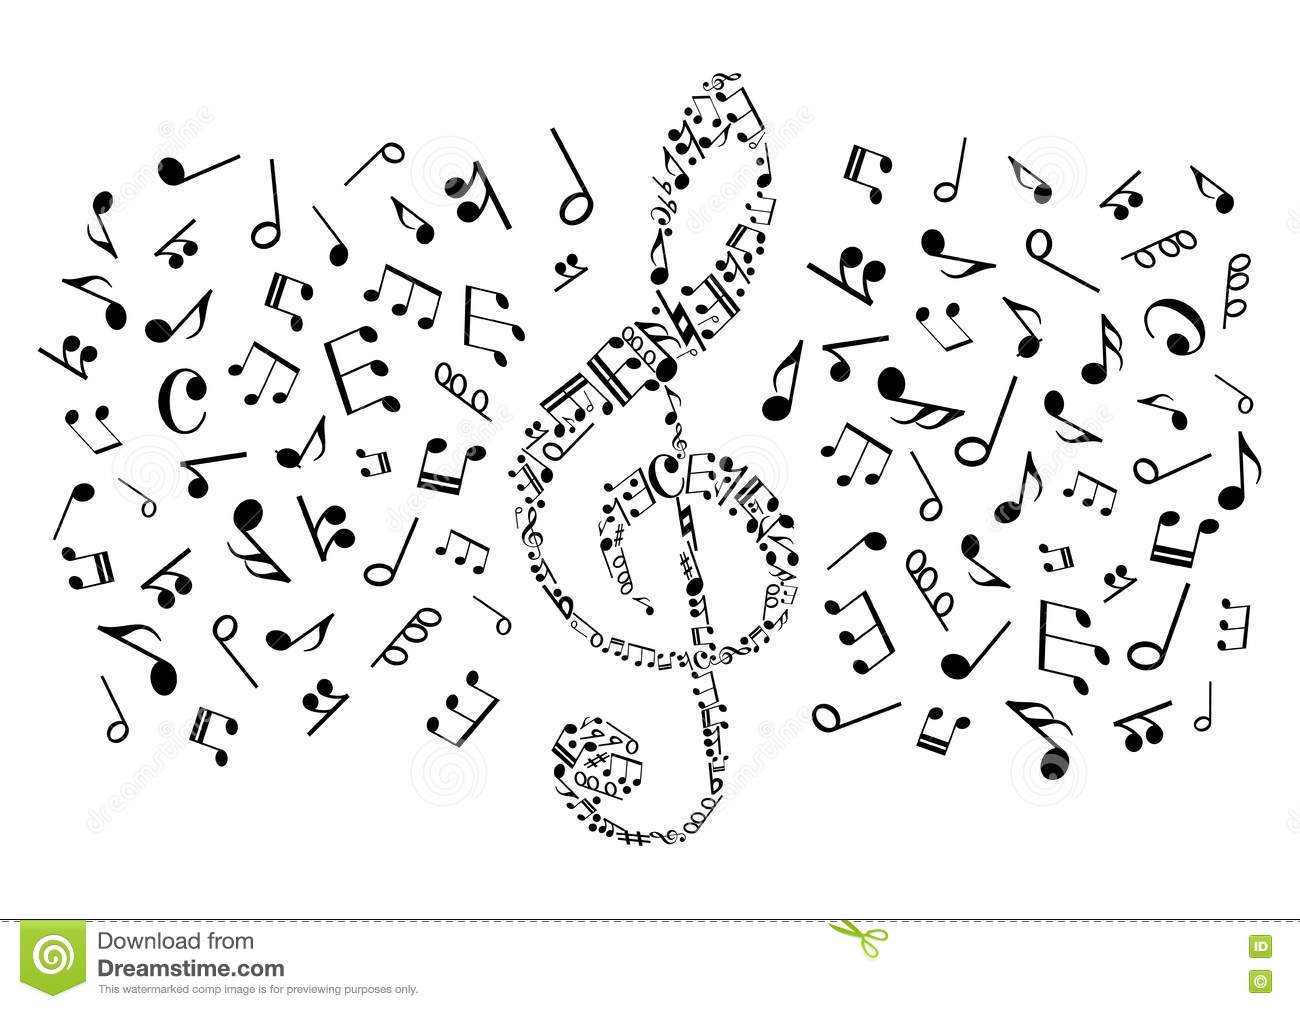 picture relating to Printable Music Notes Symbols named Attractive Treble Clef With Musical Notes, Symbols Inventory